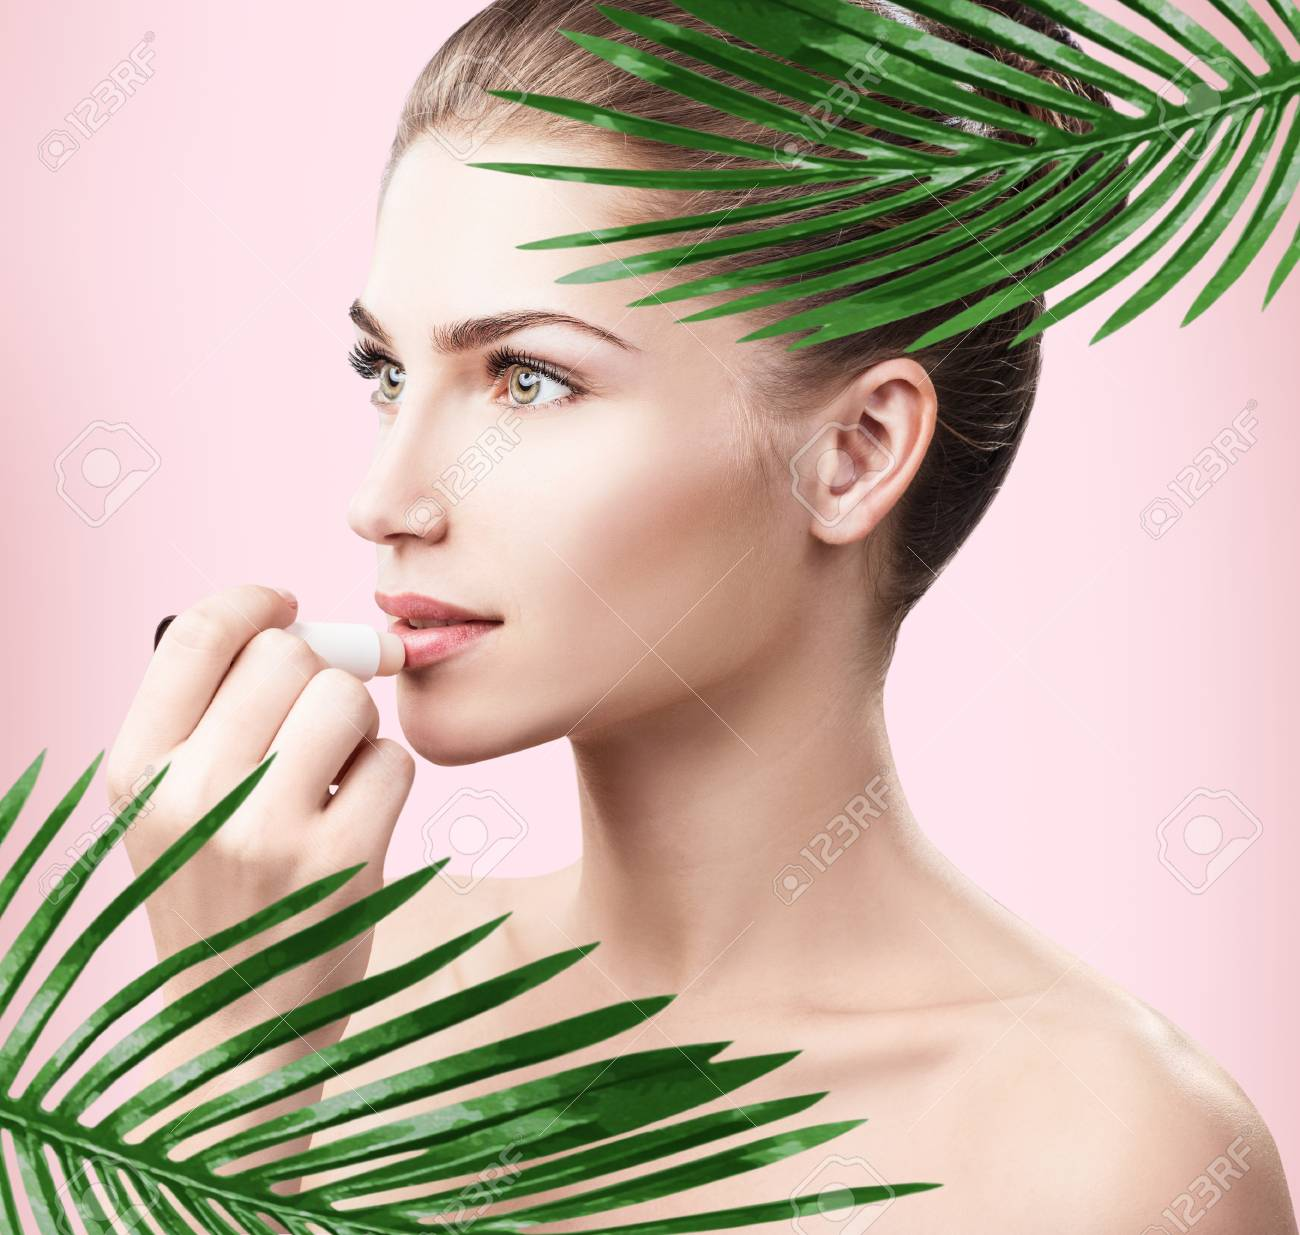 68cdace11771b Beautiful woman with perfect skin among palm leaves. Stock Photo - 97855017